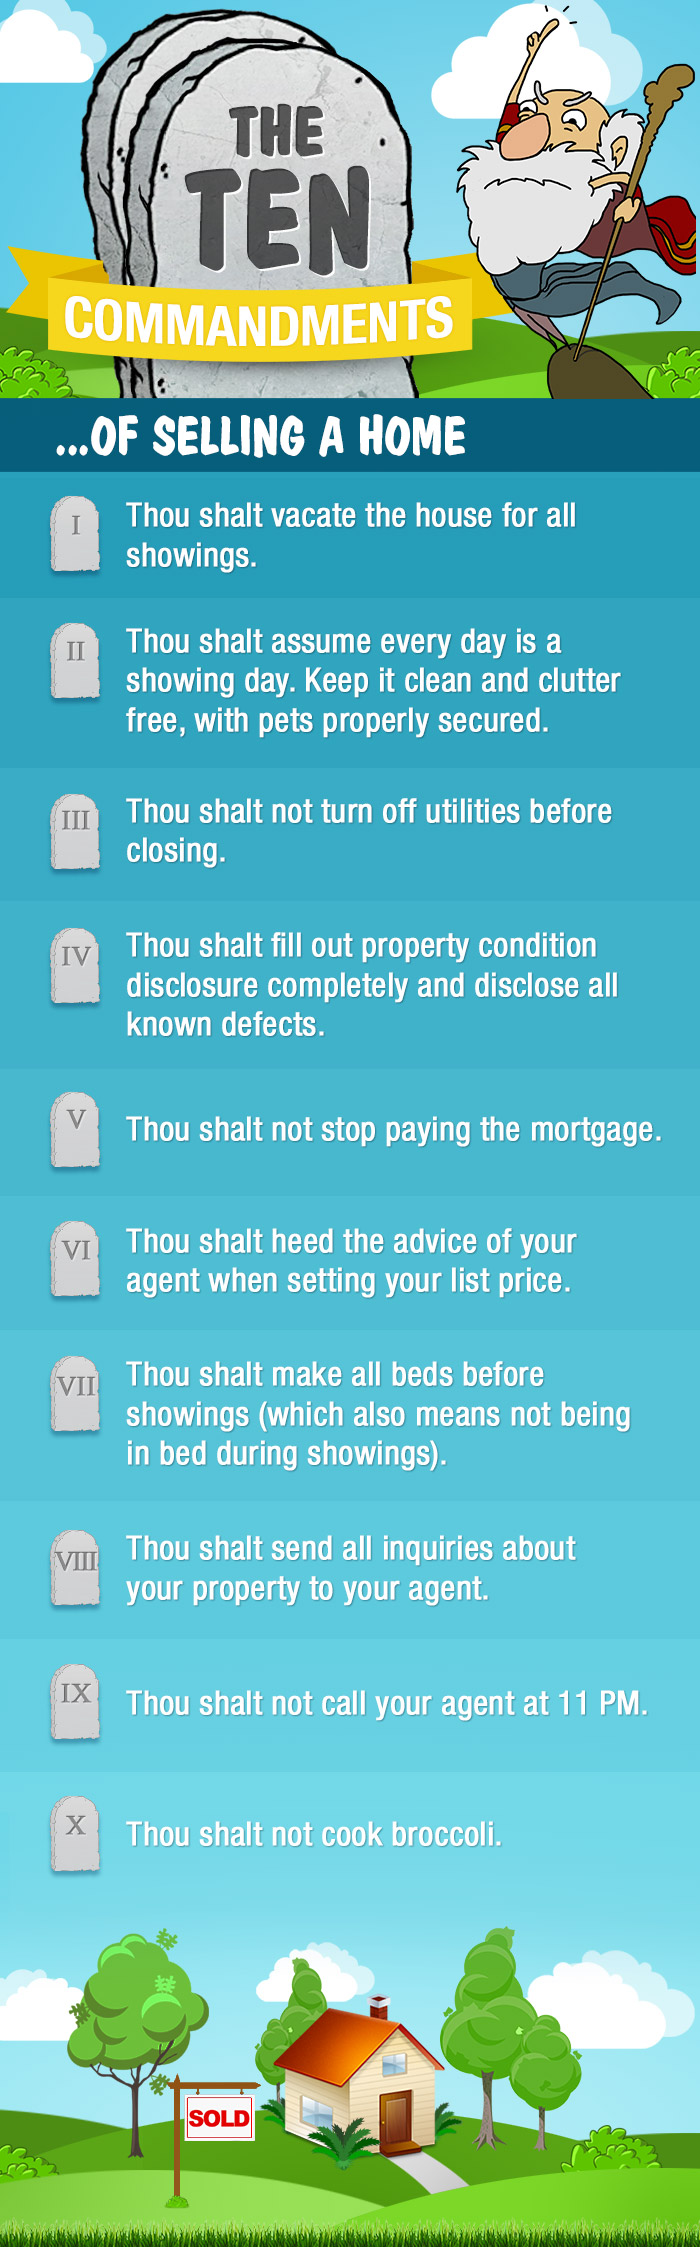 10 Commandments for Charlotte Home Sellers